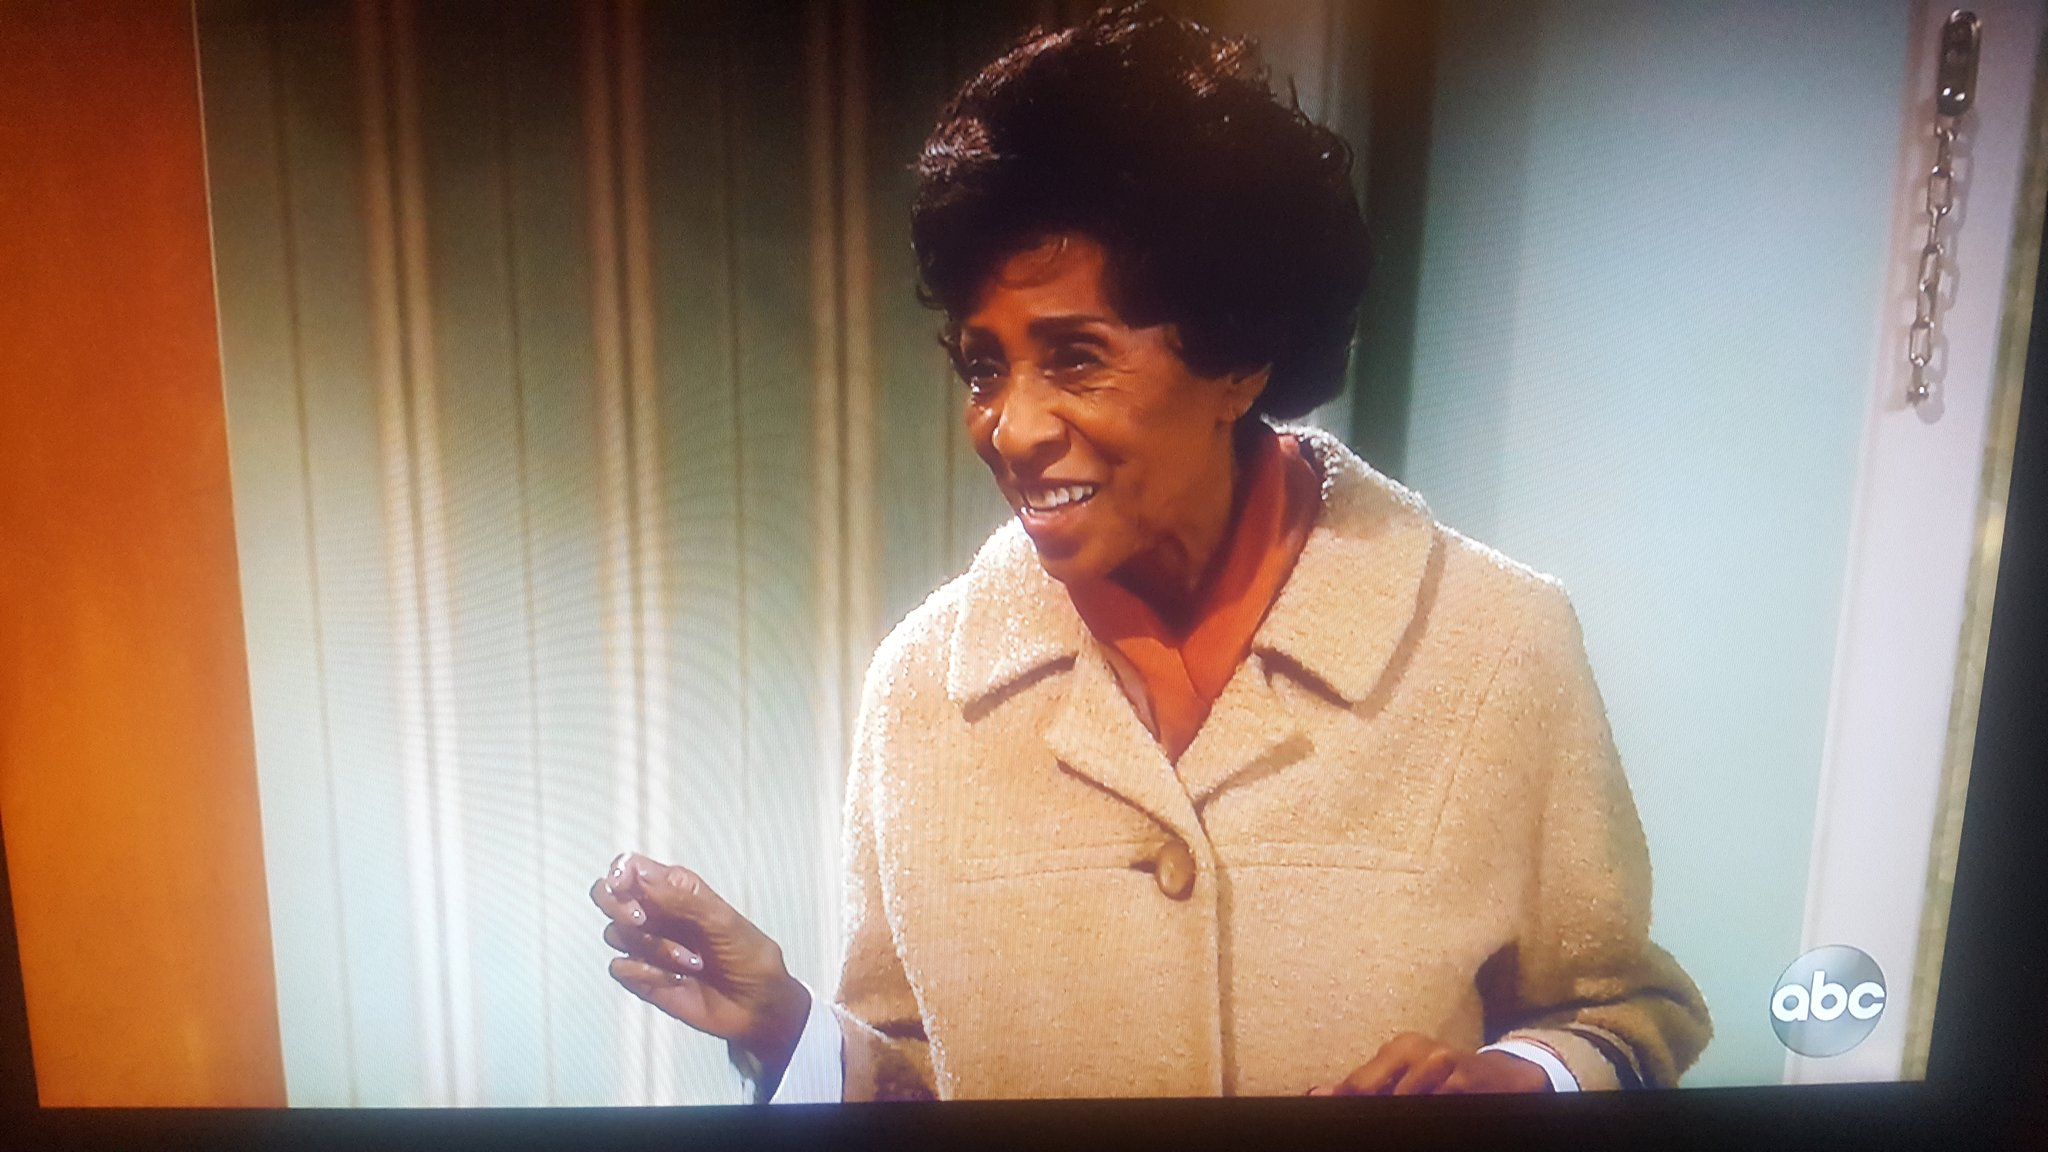 """Florence is back! """"How come we overcame and nobody told me"""" #AllInTheFamily  #TheJeffersons  #LiveInFrontOfAStudioAudience https://t.co/NyDNNKScEI"""